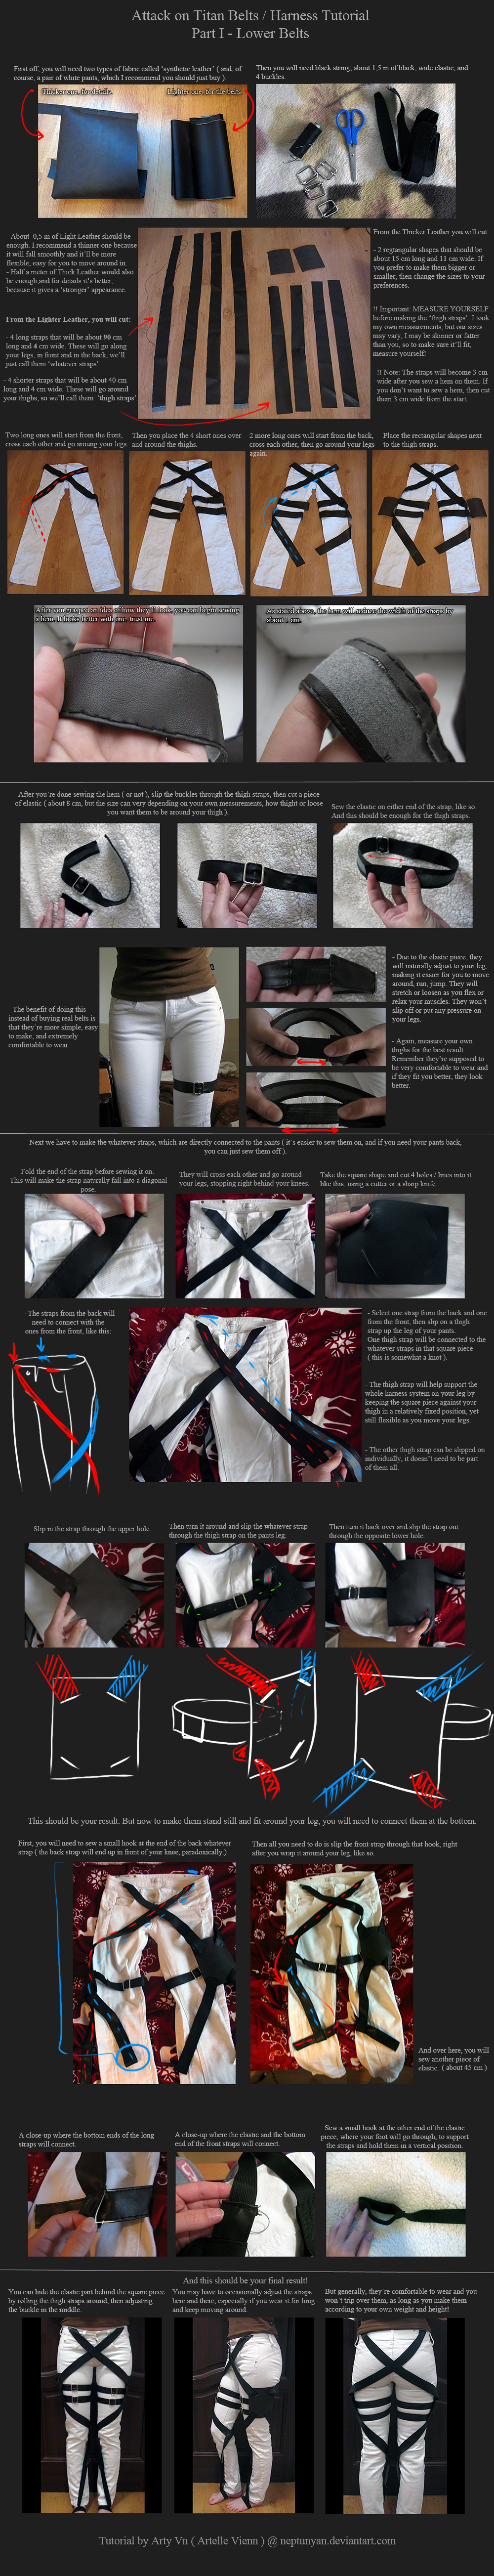 Attack on Titan Belts / Harness Tutorial - Part 1